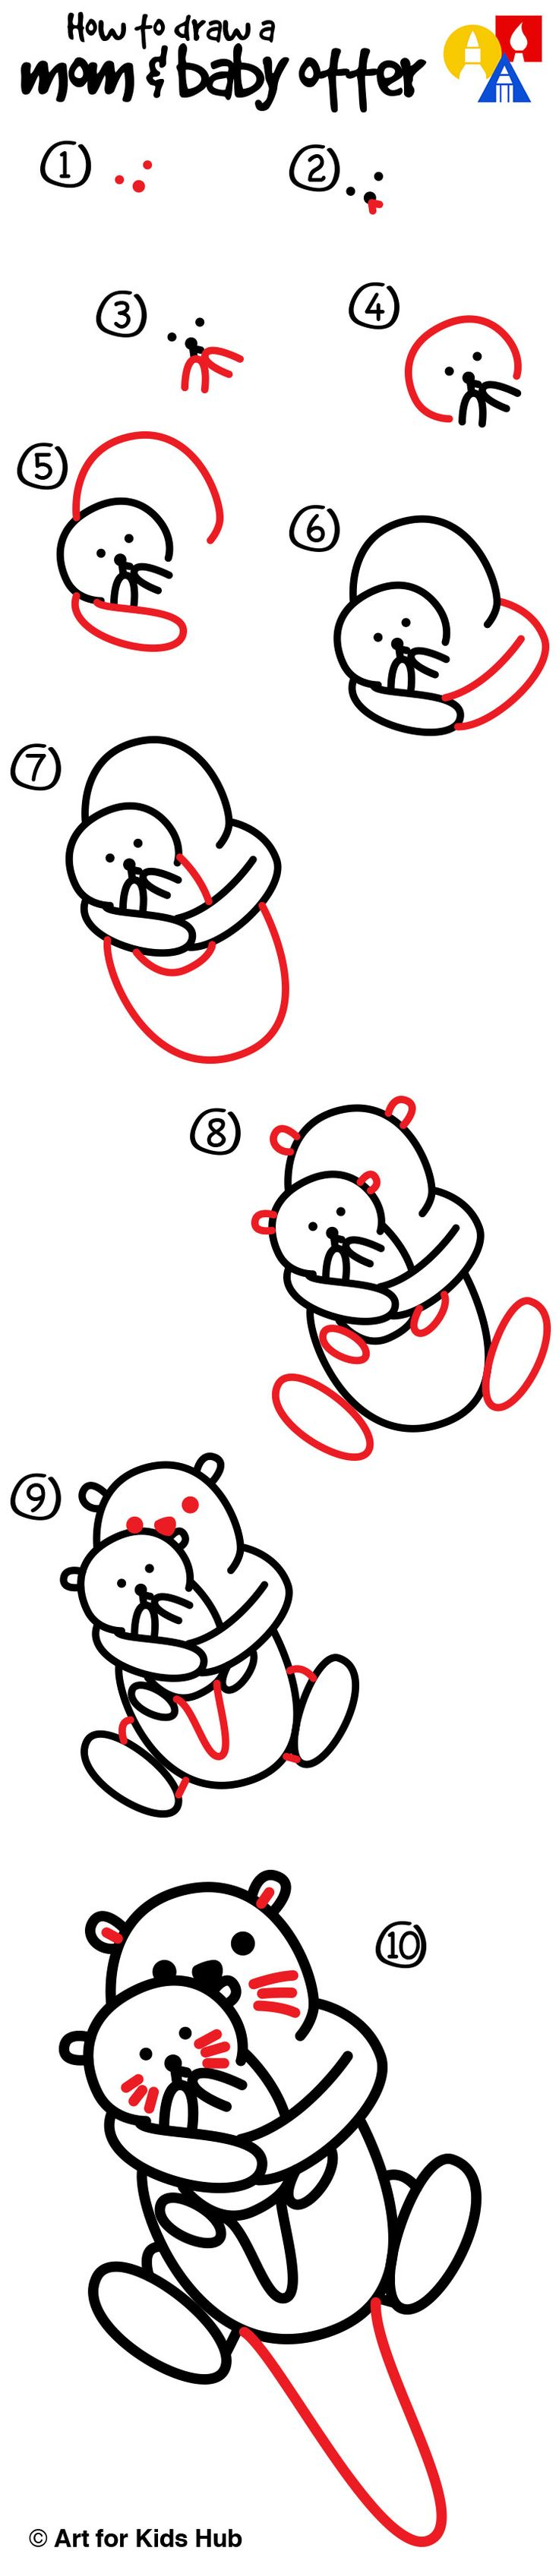 how to make a sock monkey step by step